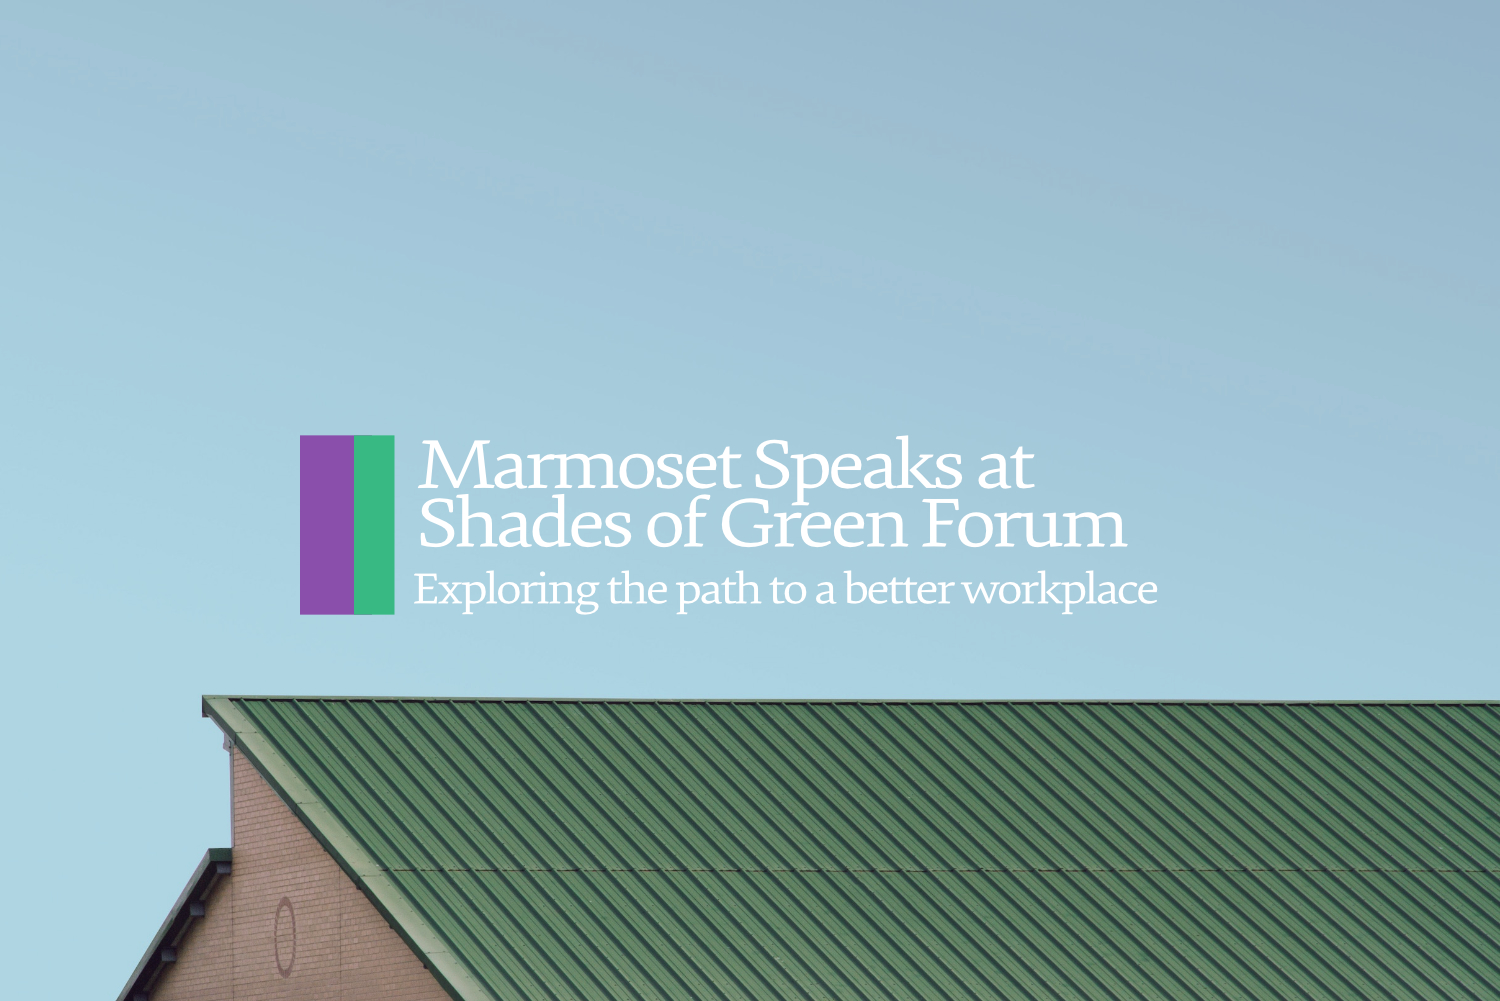 Marmoset Speaks at Shades of Green Forum.jpg